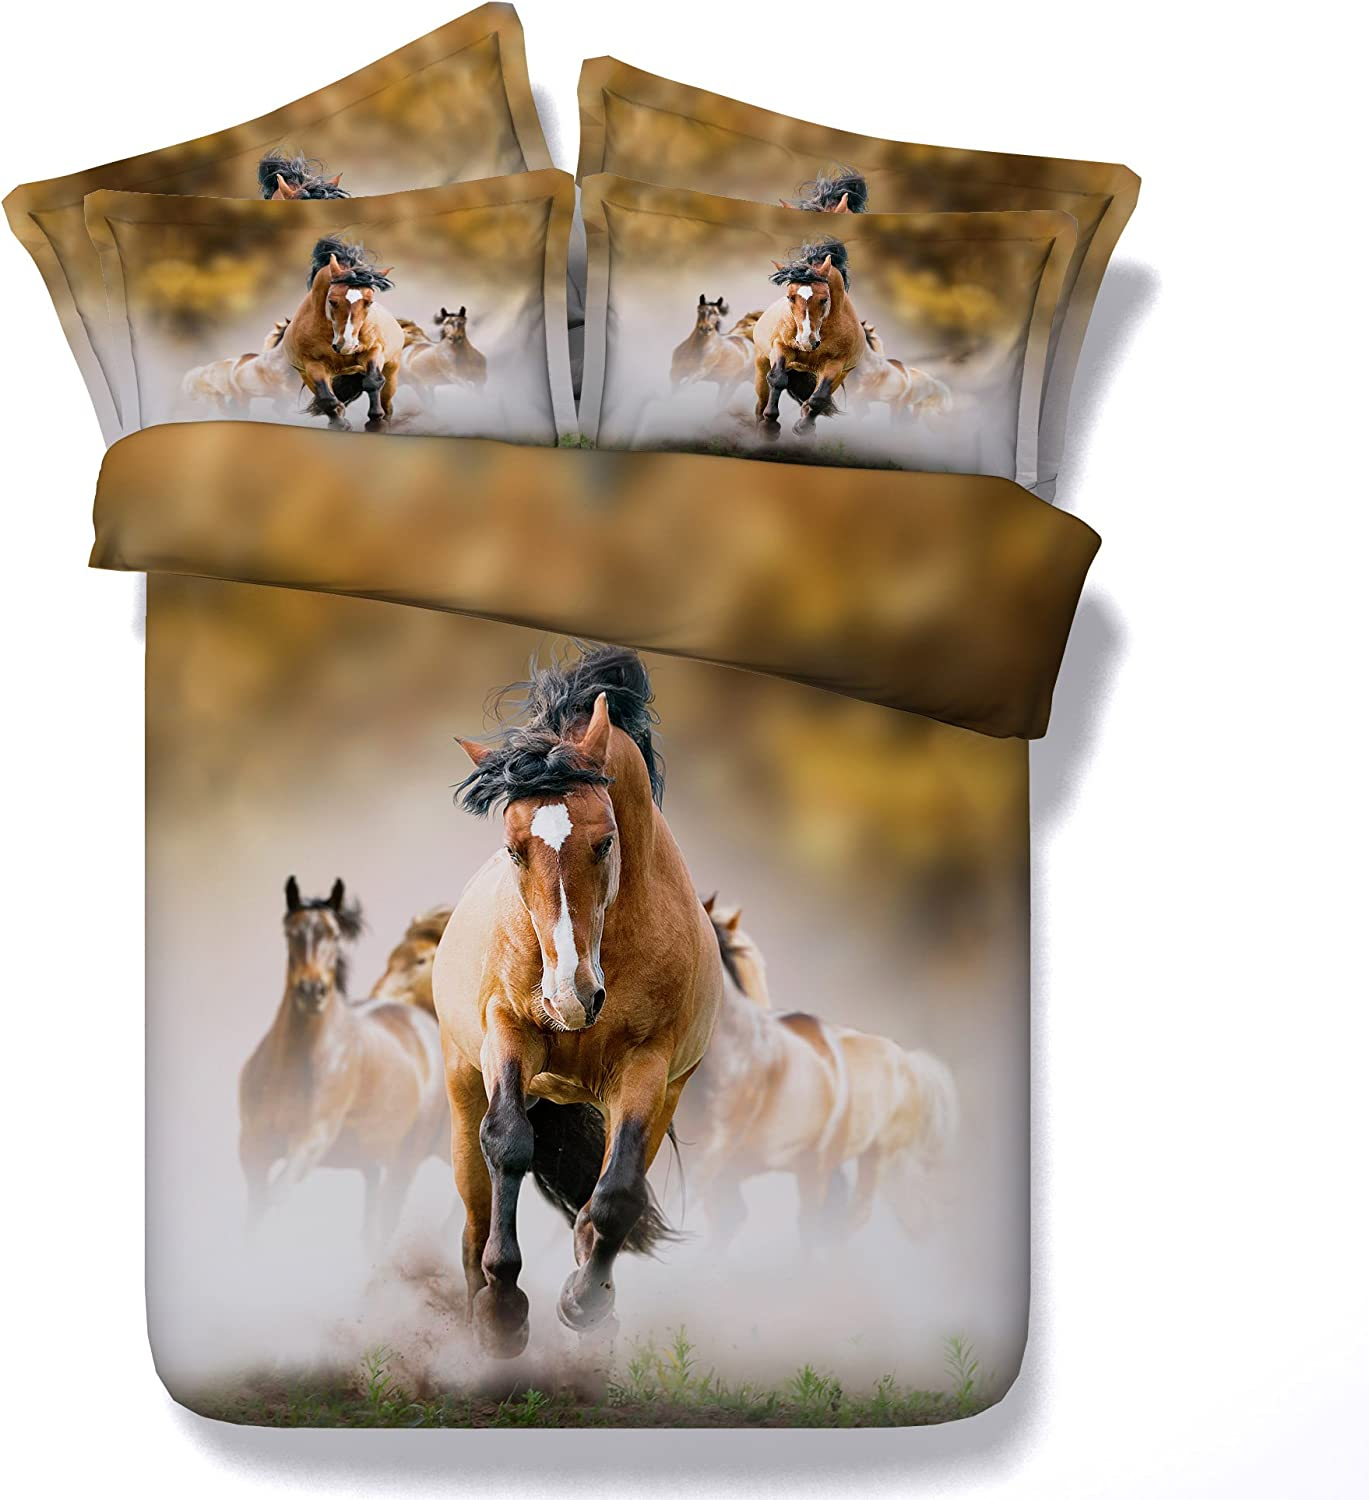 Dodou 3D Running Horses Fashionable Be super welcome Digital Printed Set Cover Cotton Duvet B